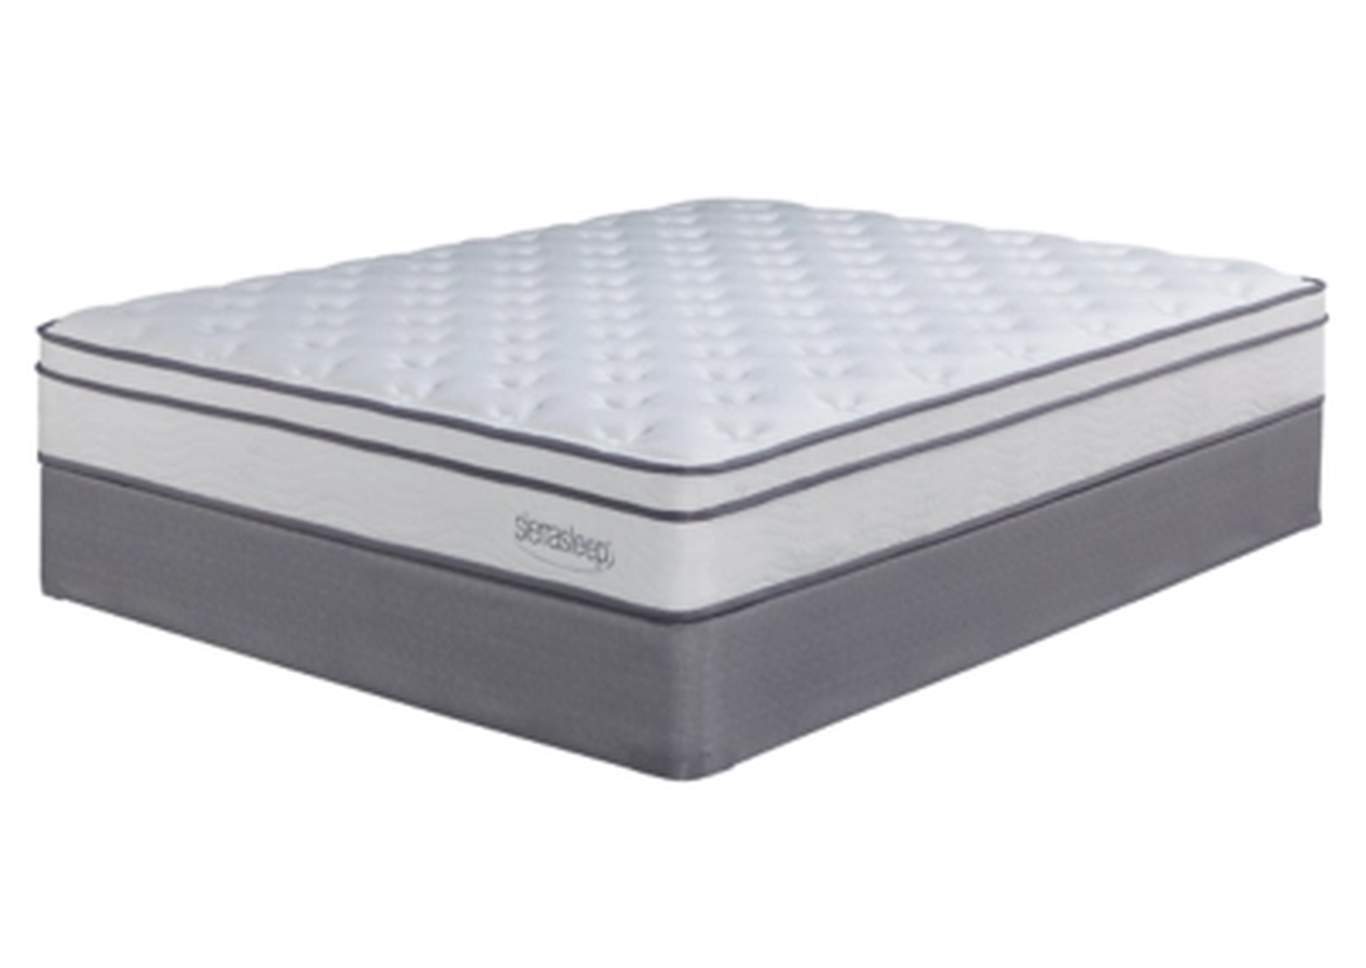 Longs Peak Limited White Twin Mattress w/Foundation,Sierra Sleep by Ashley